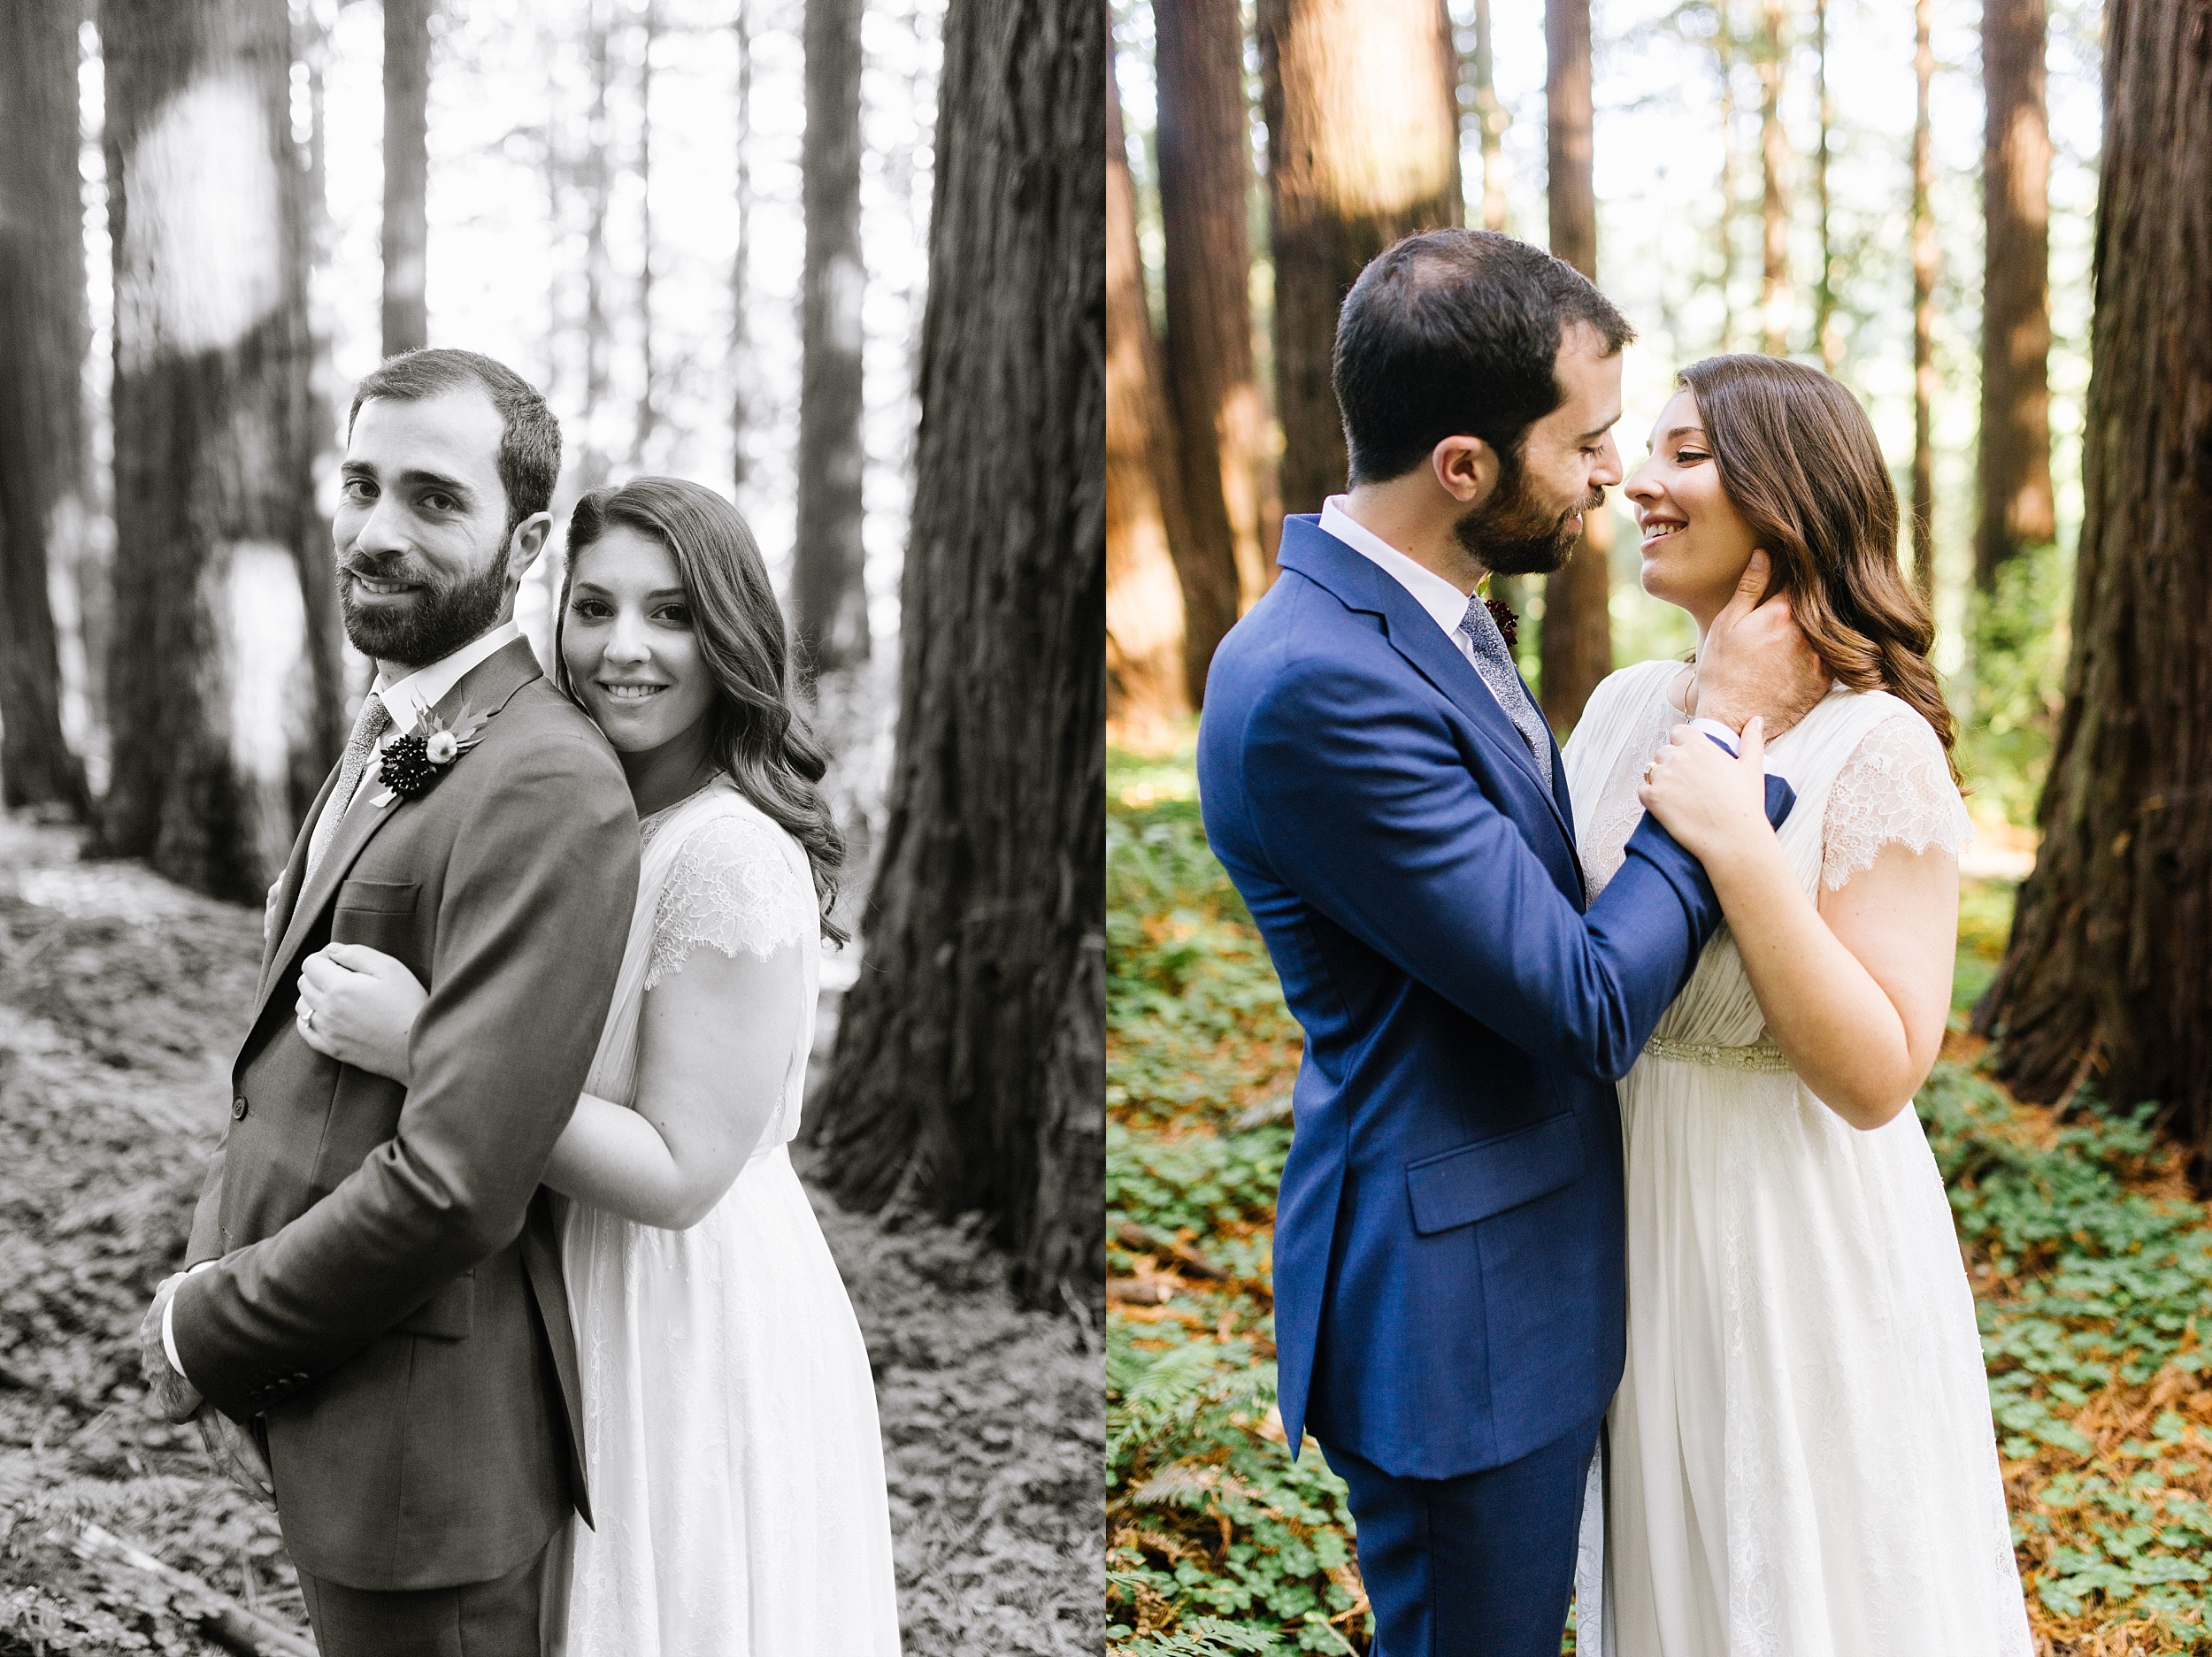 noahhannah_redwoods_botanical_wedding_berkeley_cdp_0020.jpg